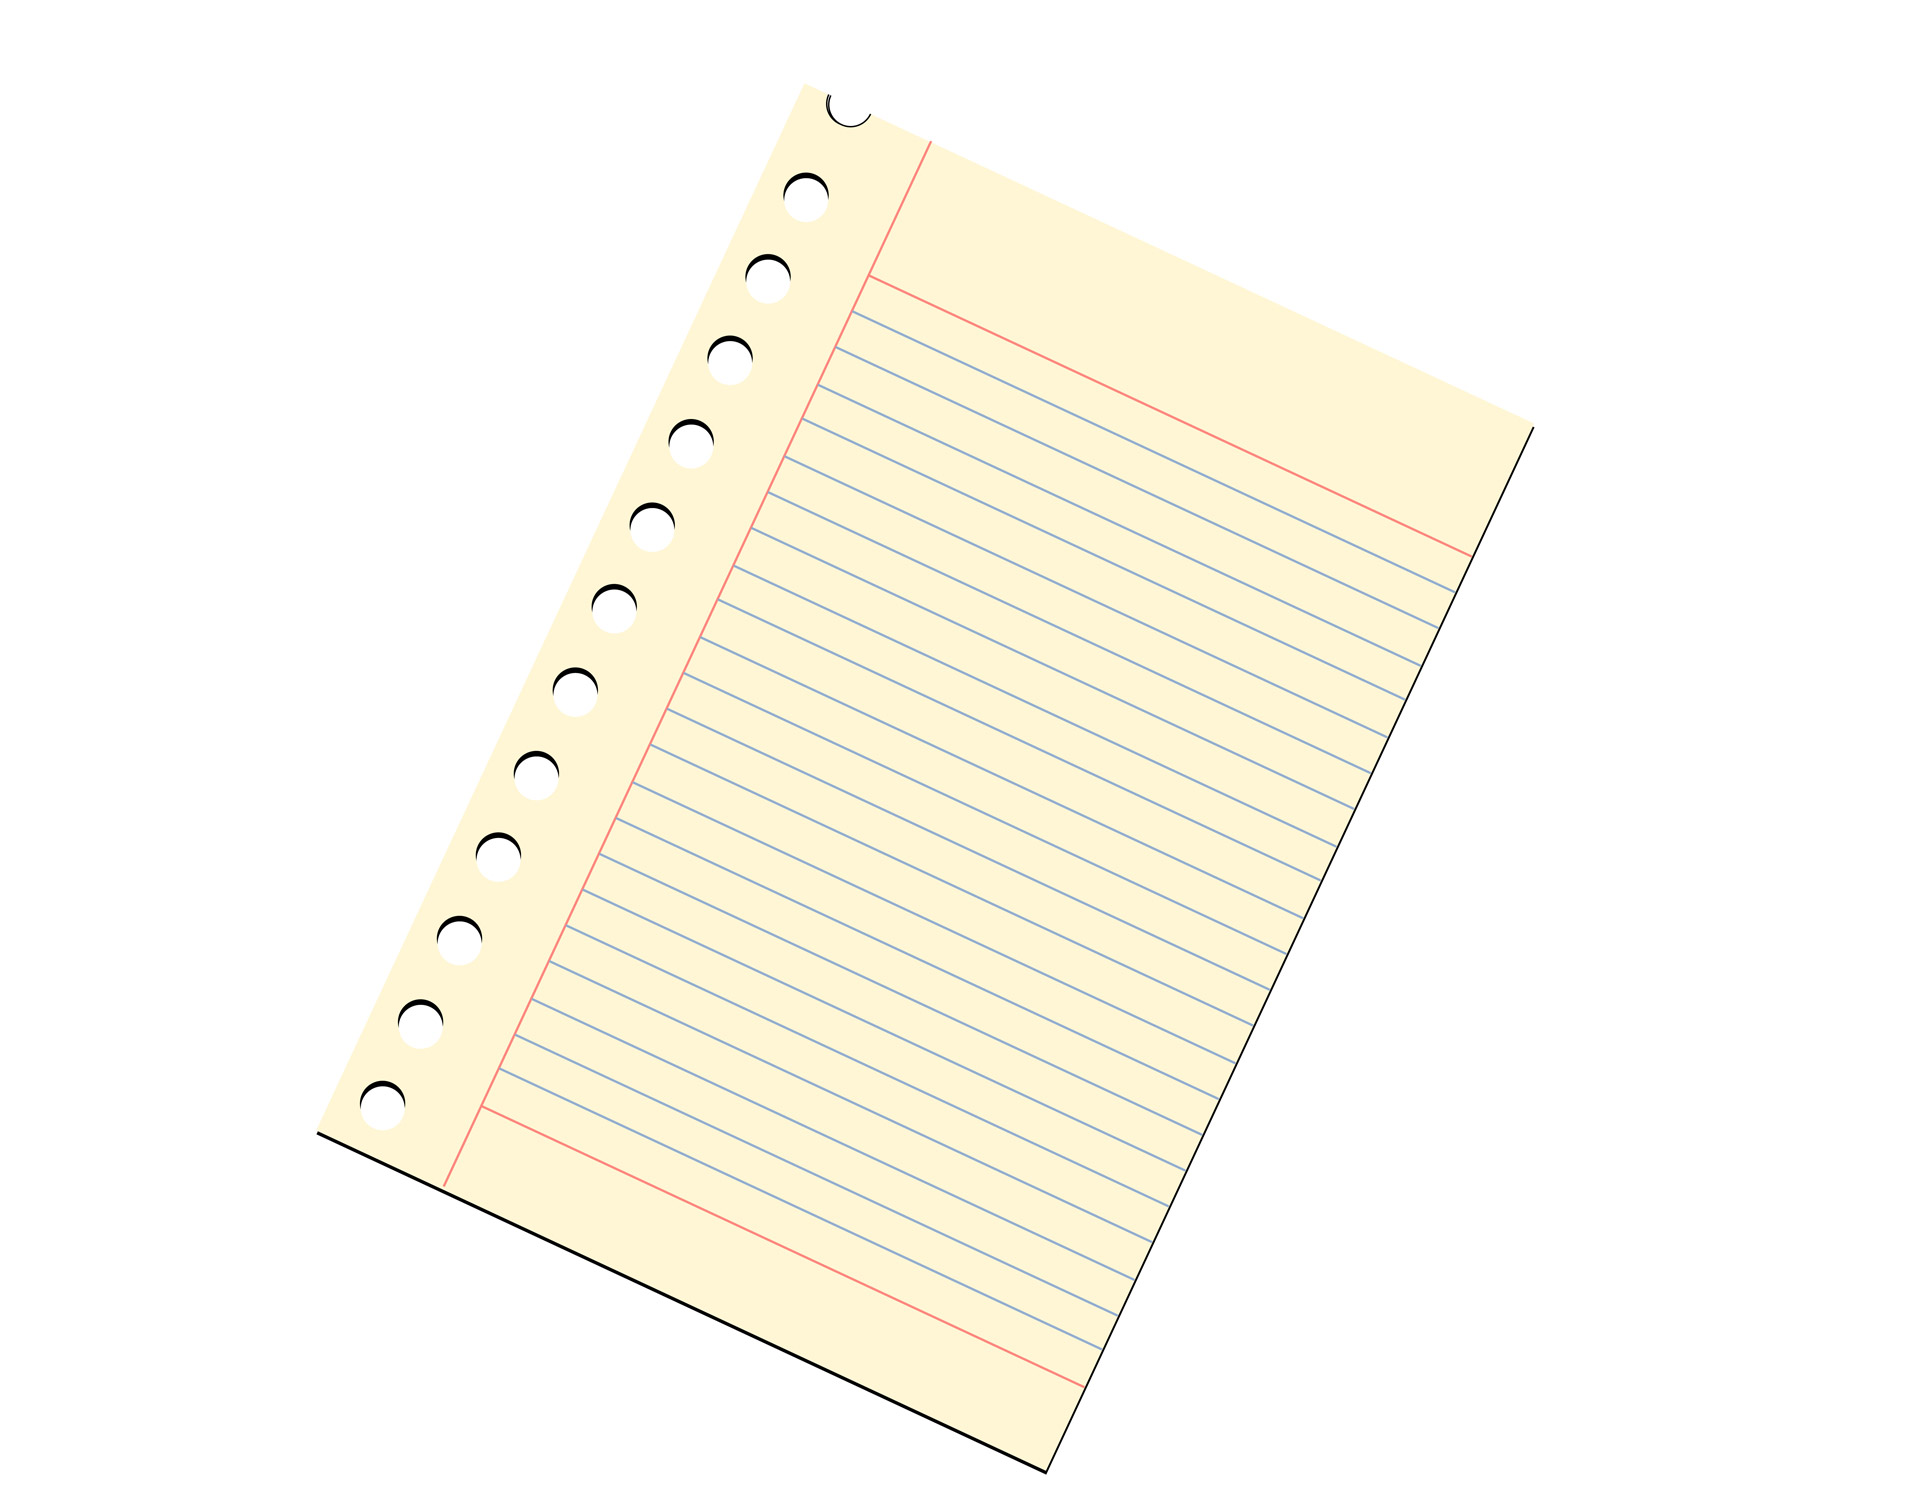 Paper clipart note taking  Wallpapers Free Wallpaper Quality